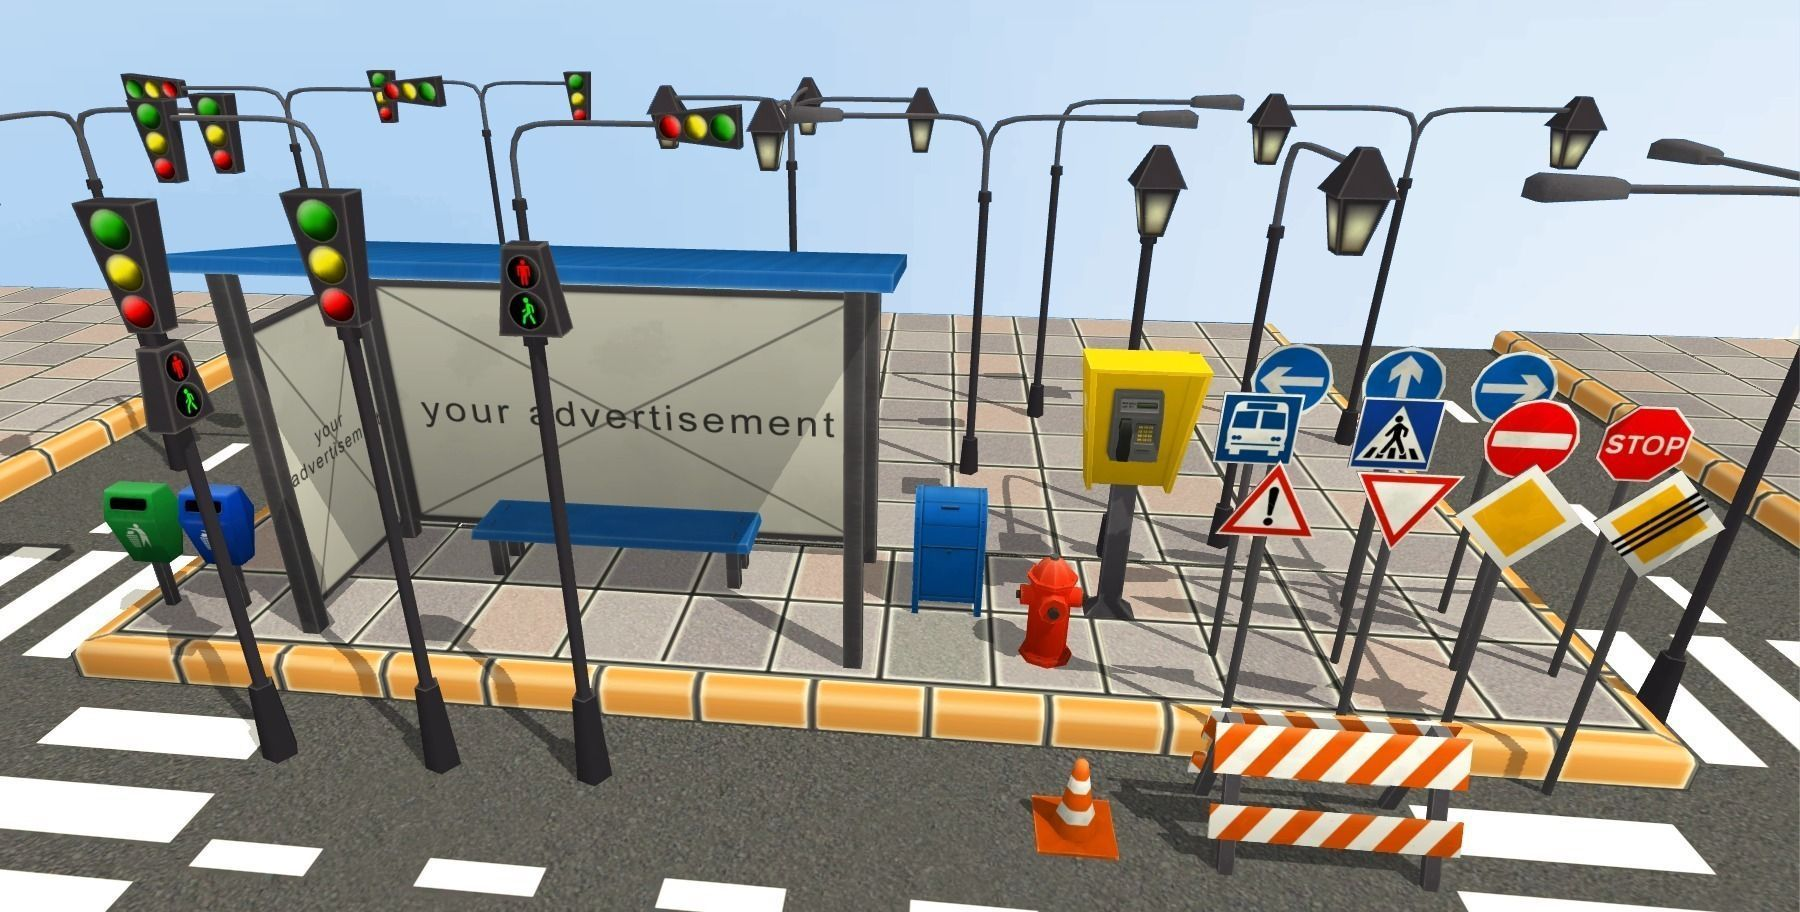 3d Model Vr Ar Ready 231 Road Signs – Fondos de Pantalla